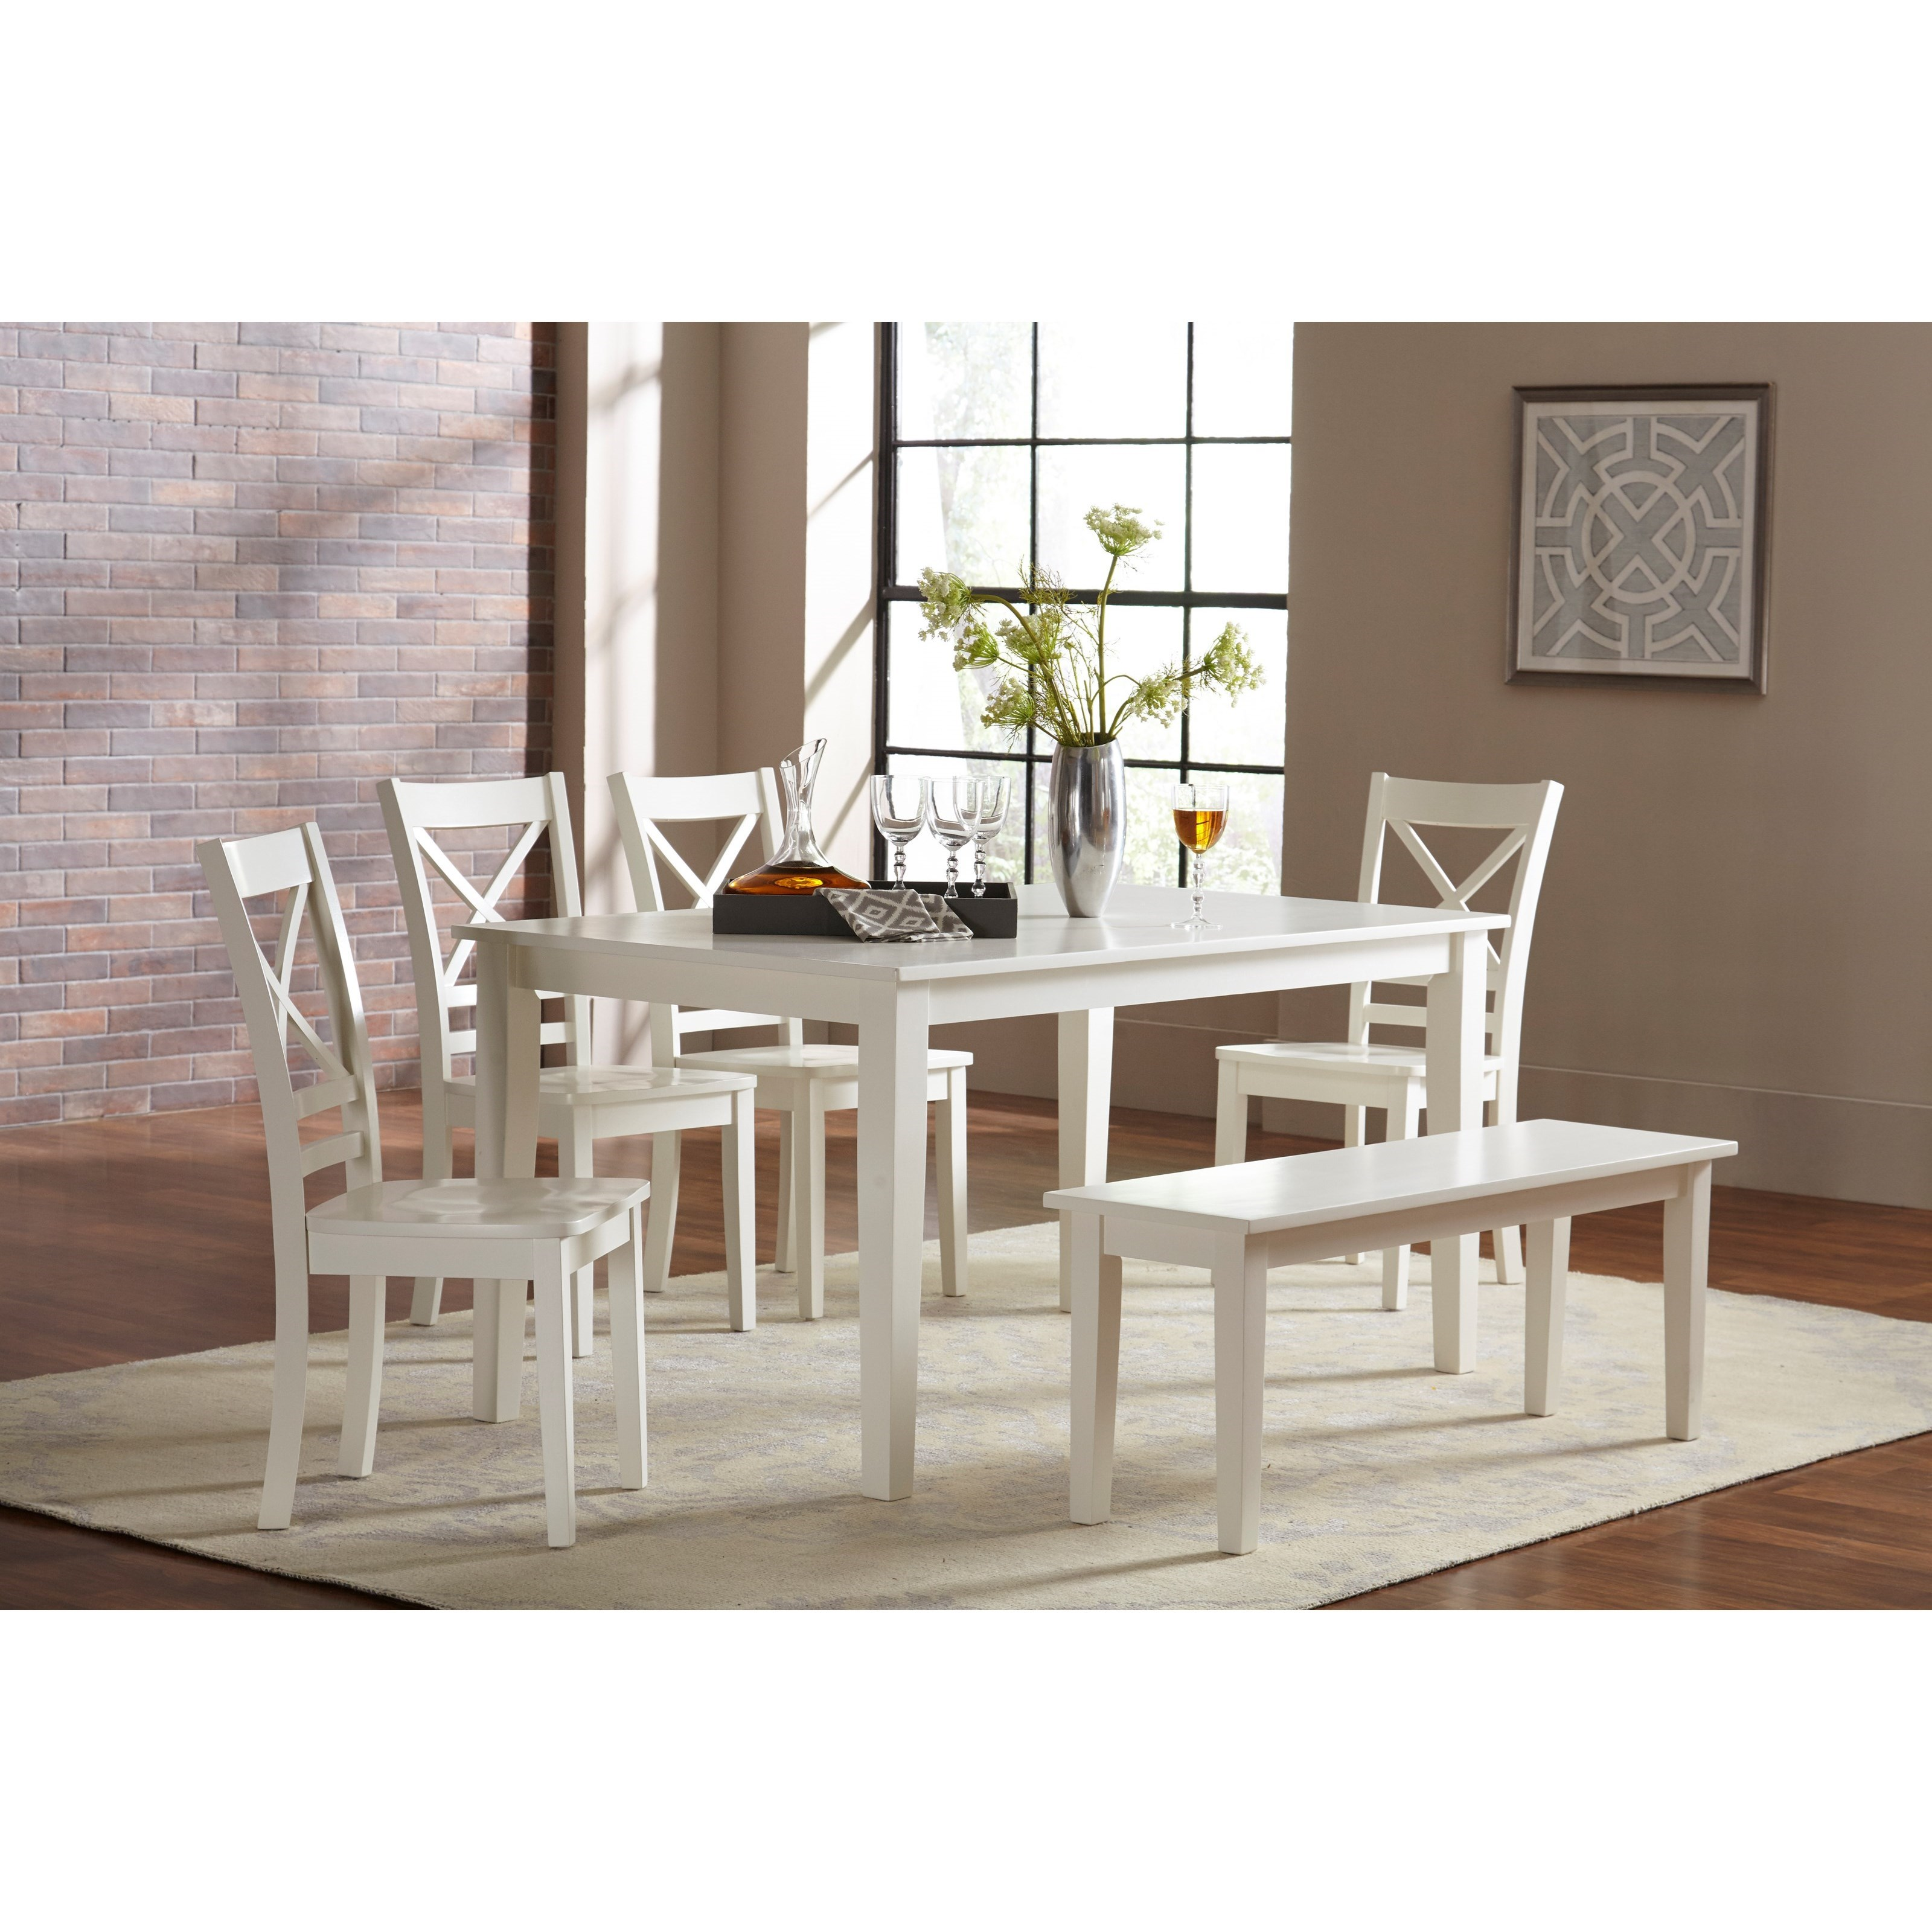 Simplicity Dining Table and Chair/Bench Set by Jofran at Stuckey Furniture